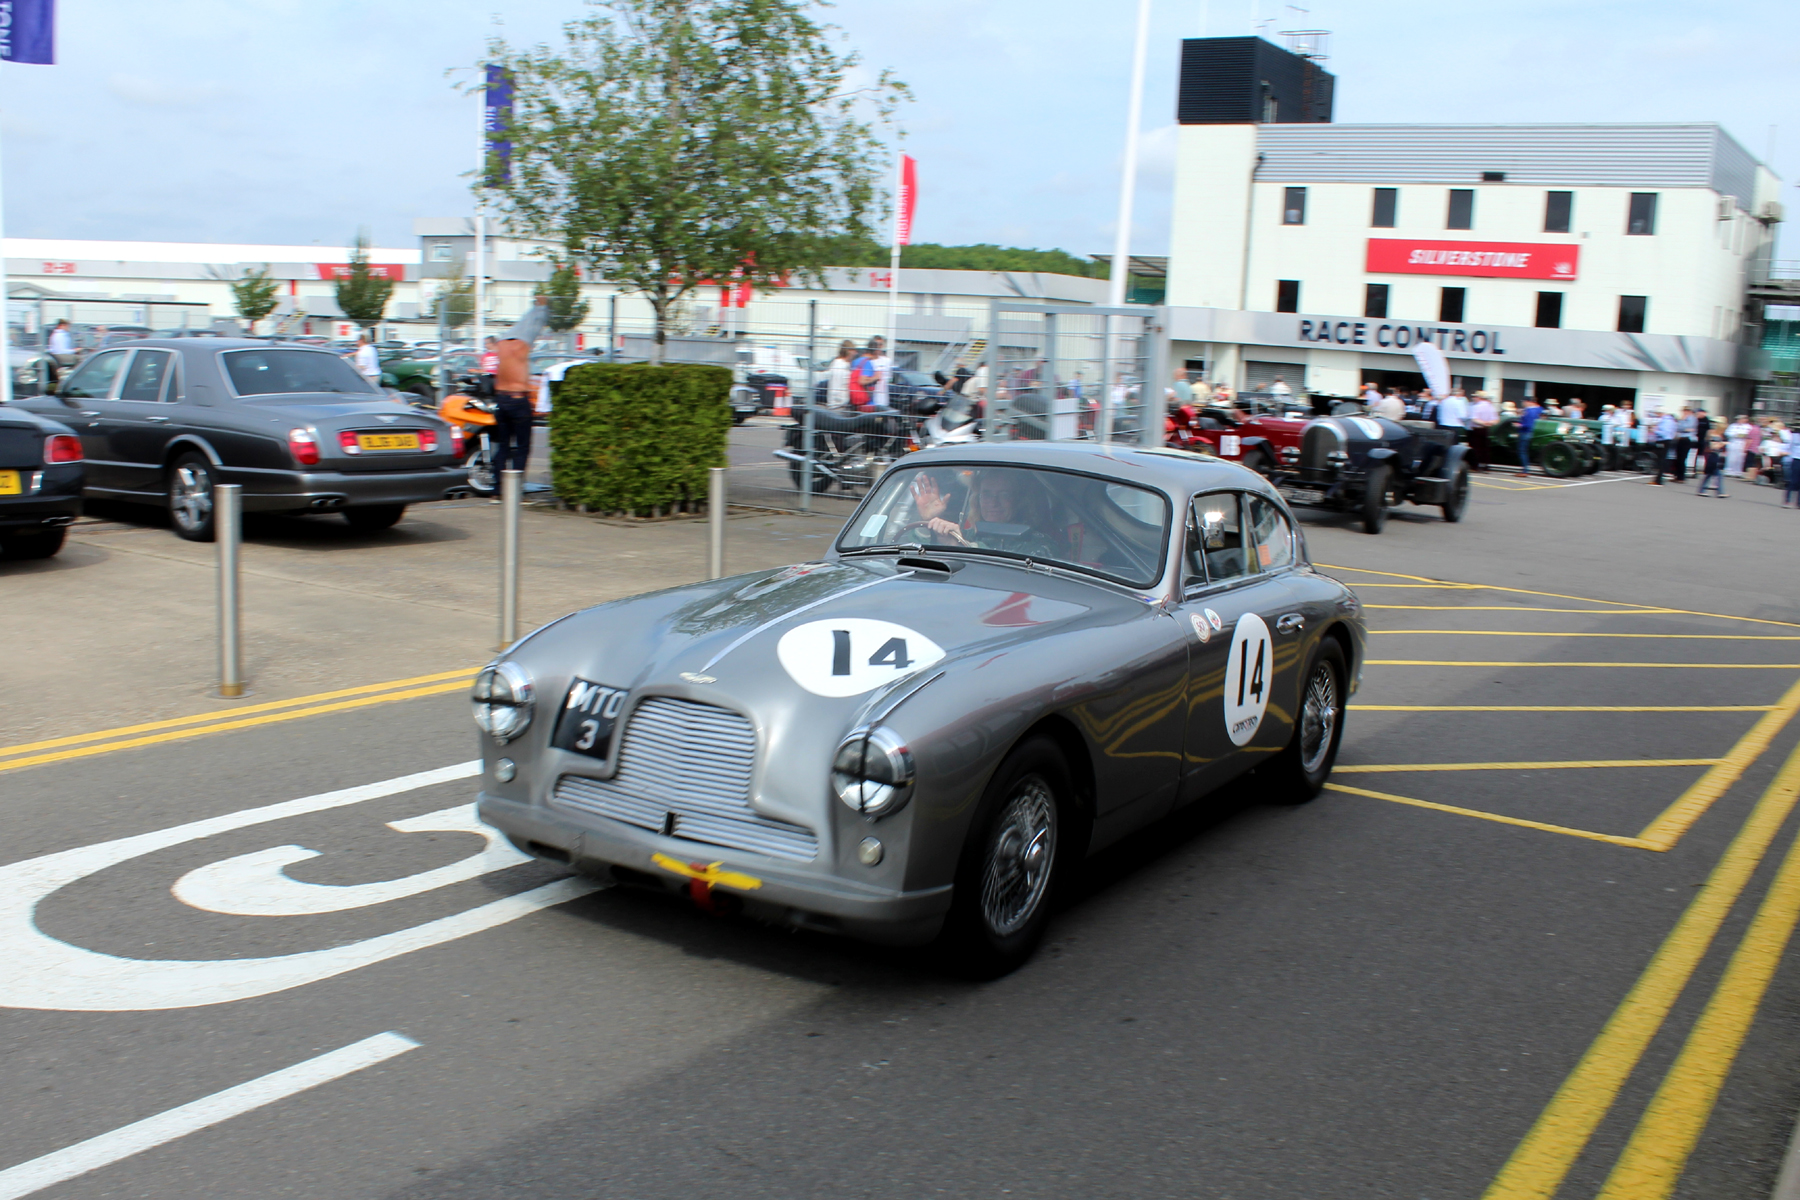 Tim Stamper, in Richard Bell's Aston Martin DB2/4 follows Alex out, and has time to wave to the photographer! Photo - JT